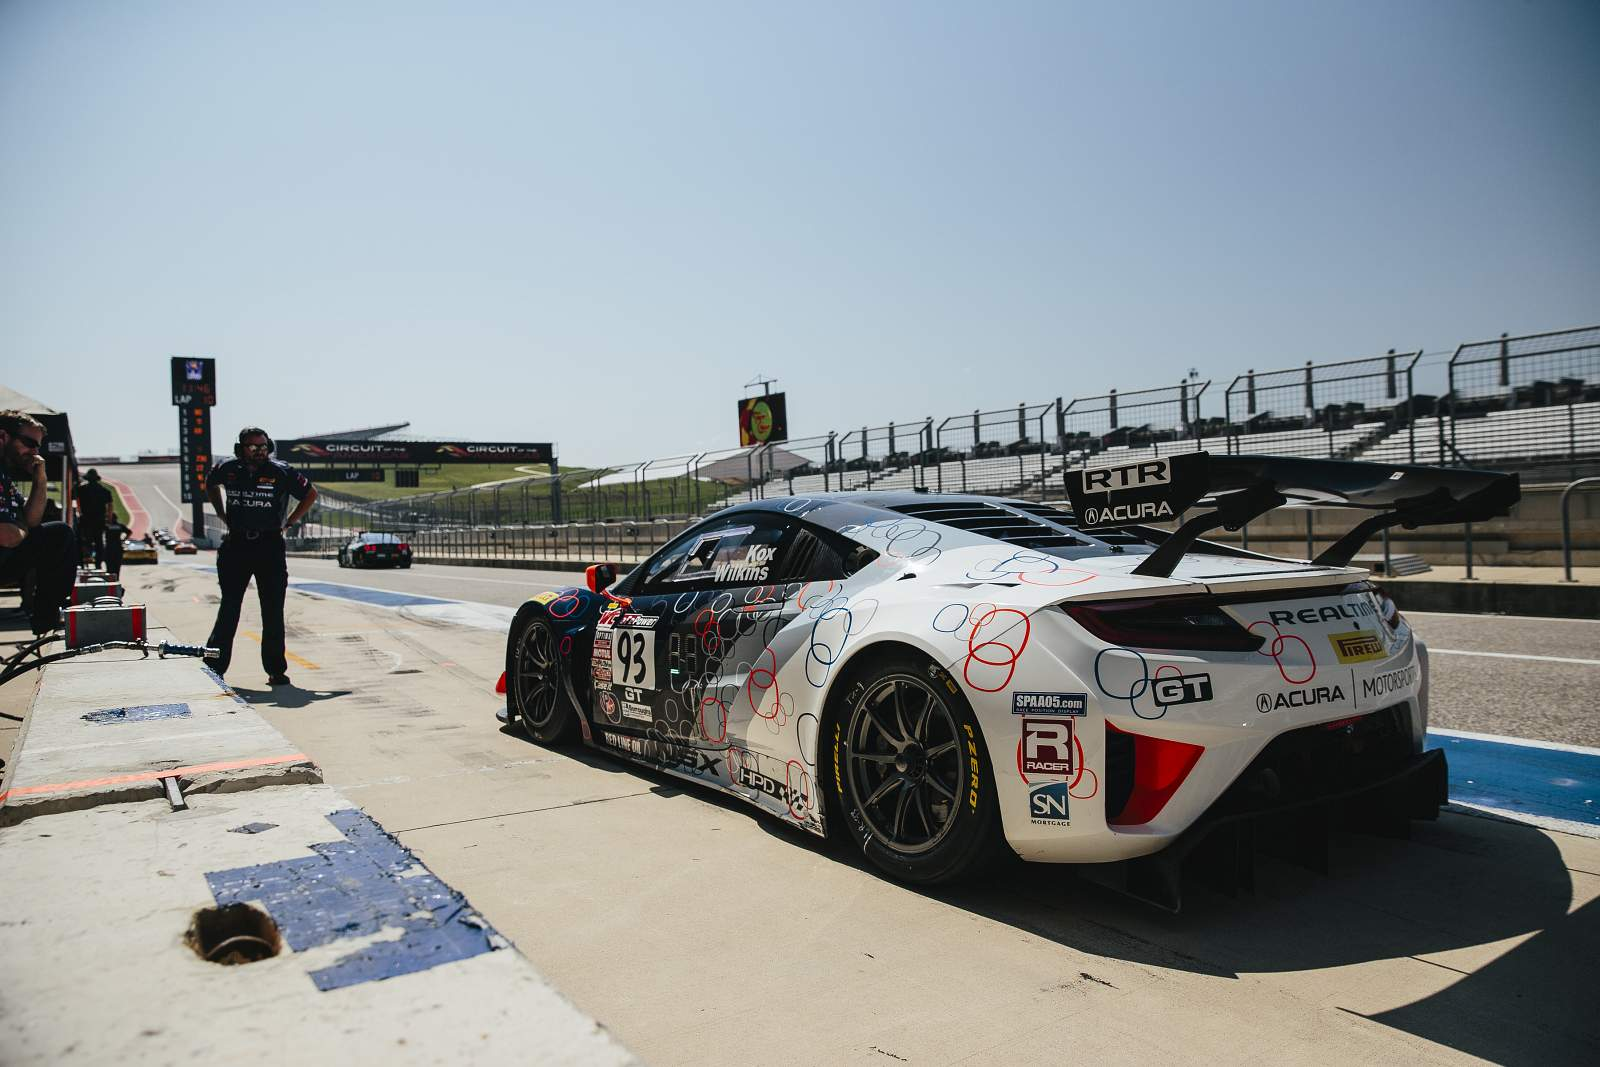 peter-kox-realtime-racing-pirelli-world-challenge-cota--019